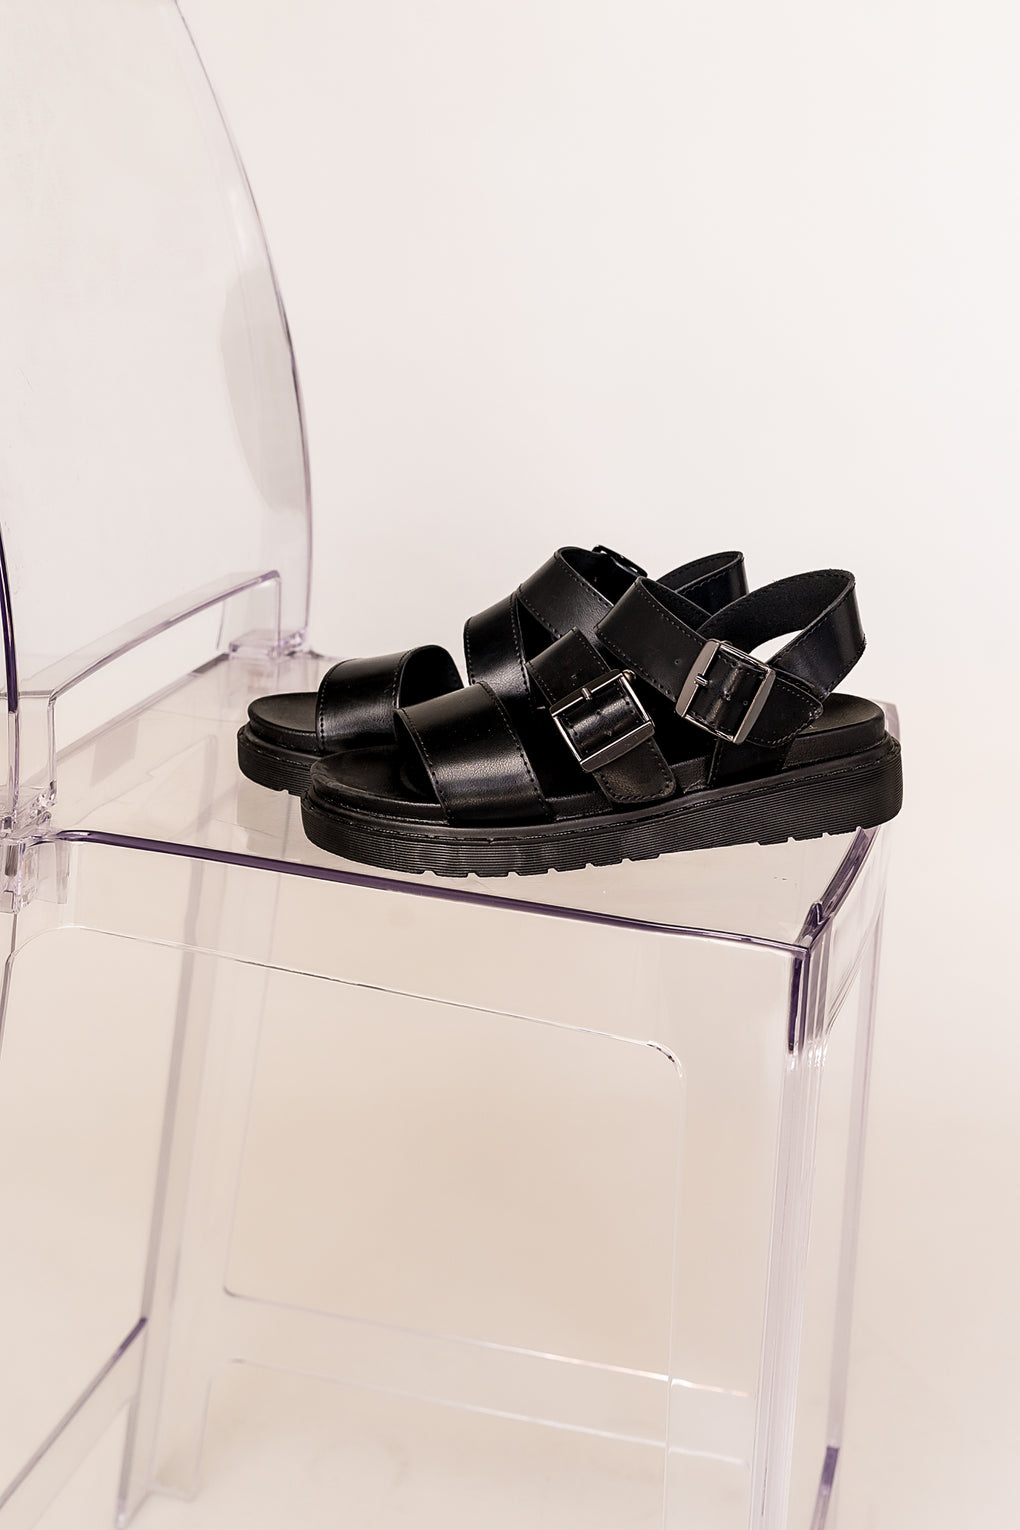 90s Baby Buckle Strap Grunge Sandals in Black